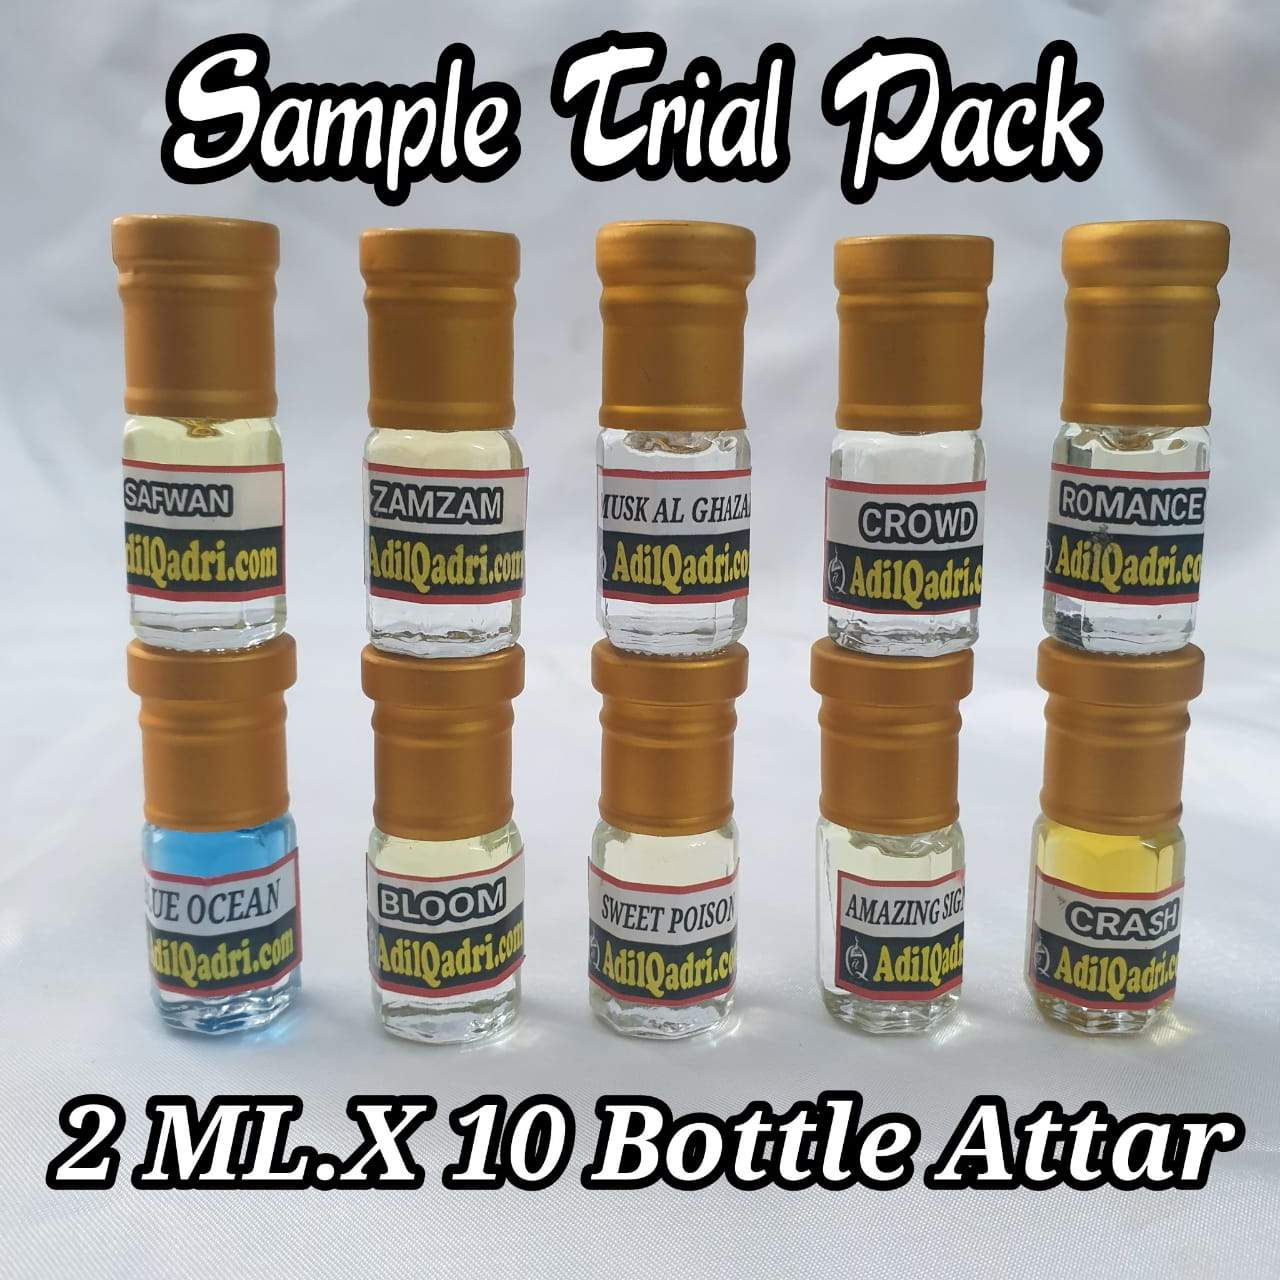 AdilQadri Premium Attar  Sample  Trial pack  2 ml x 10 Bottle